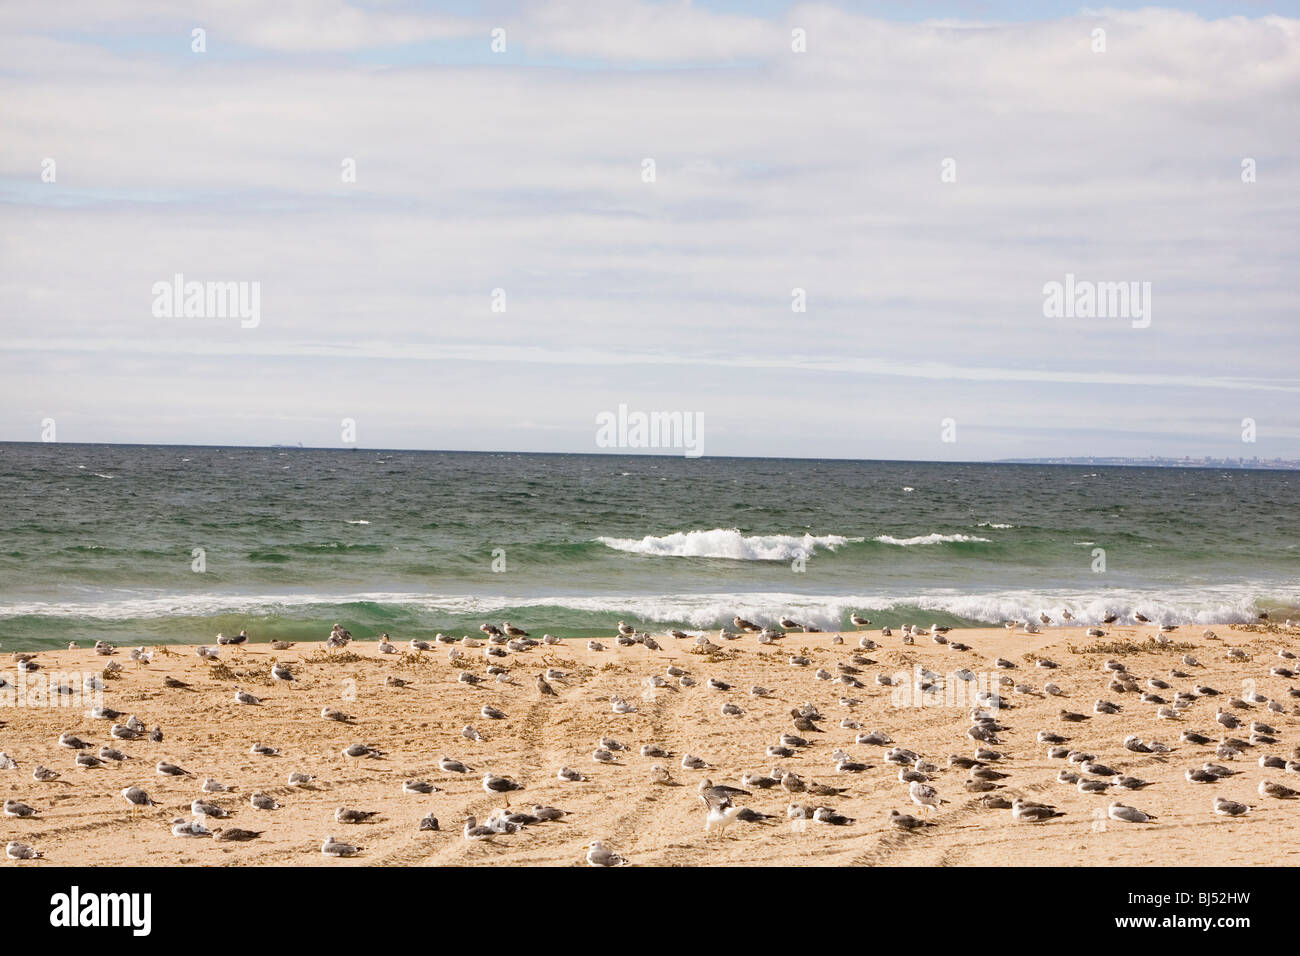 Gulls on a sandy beach - Stock Image